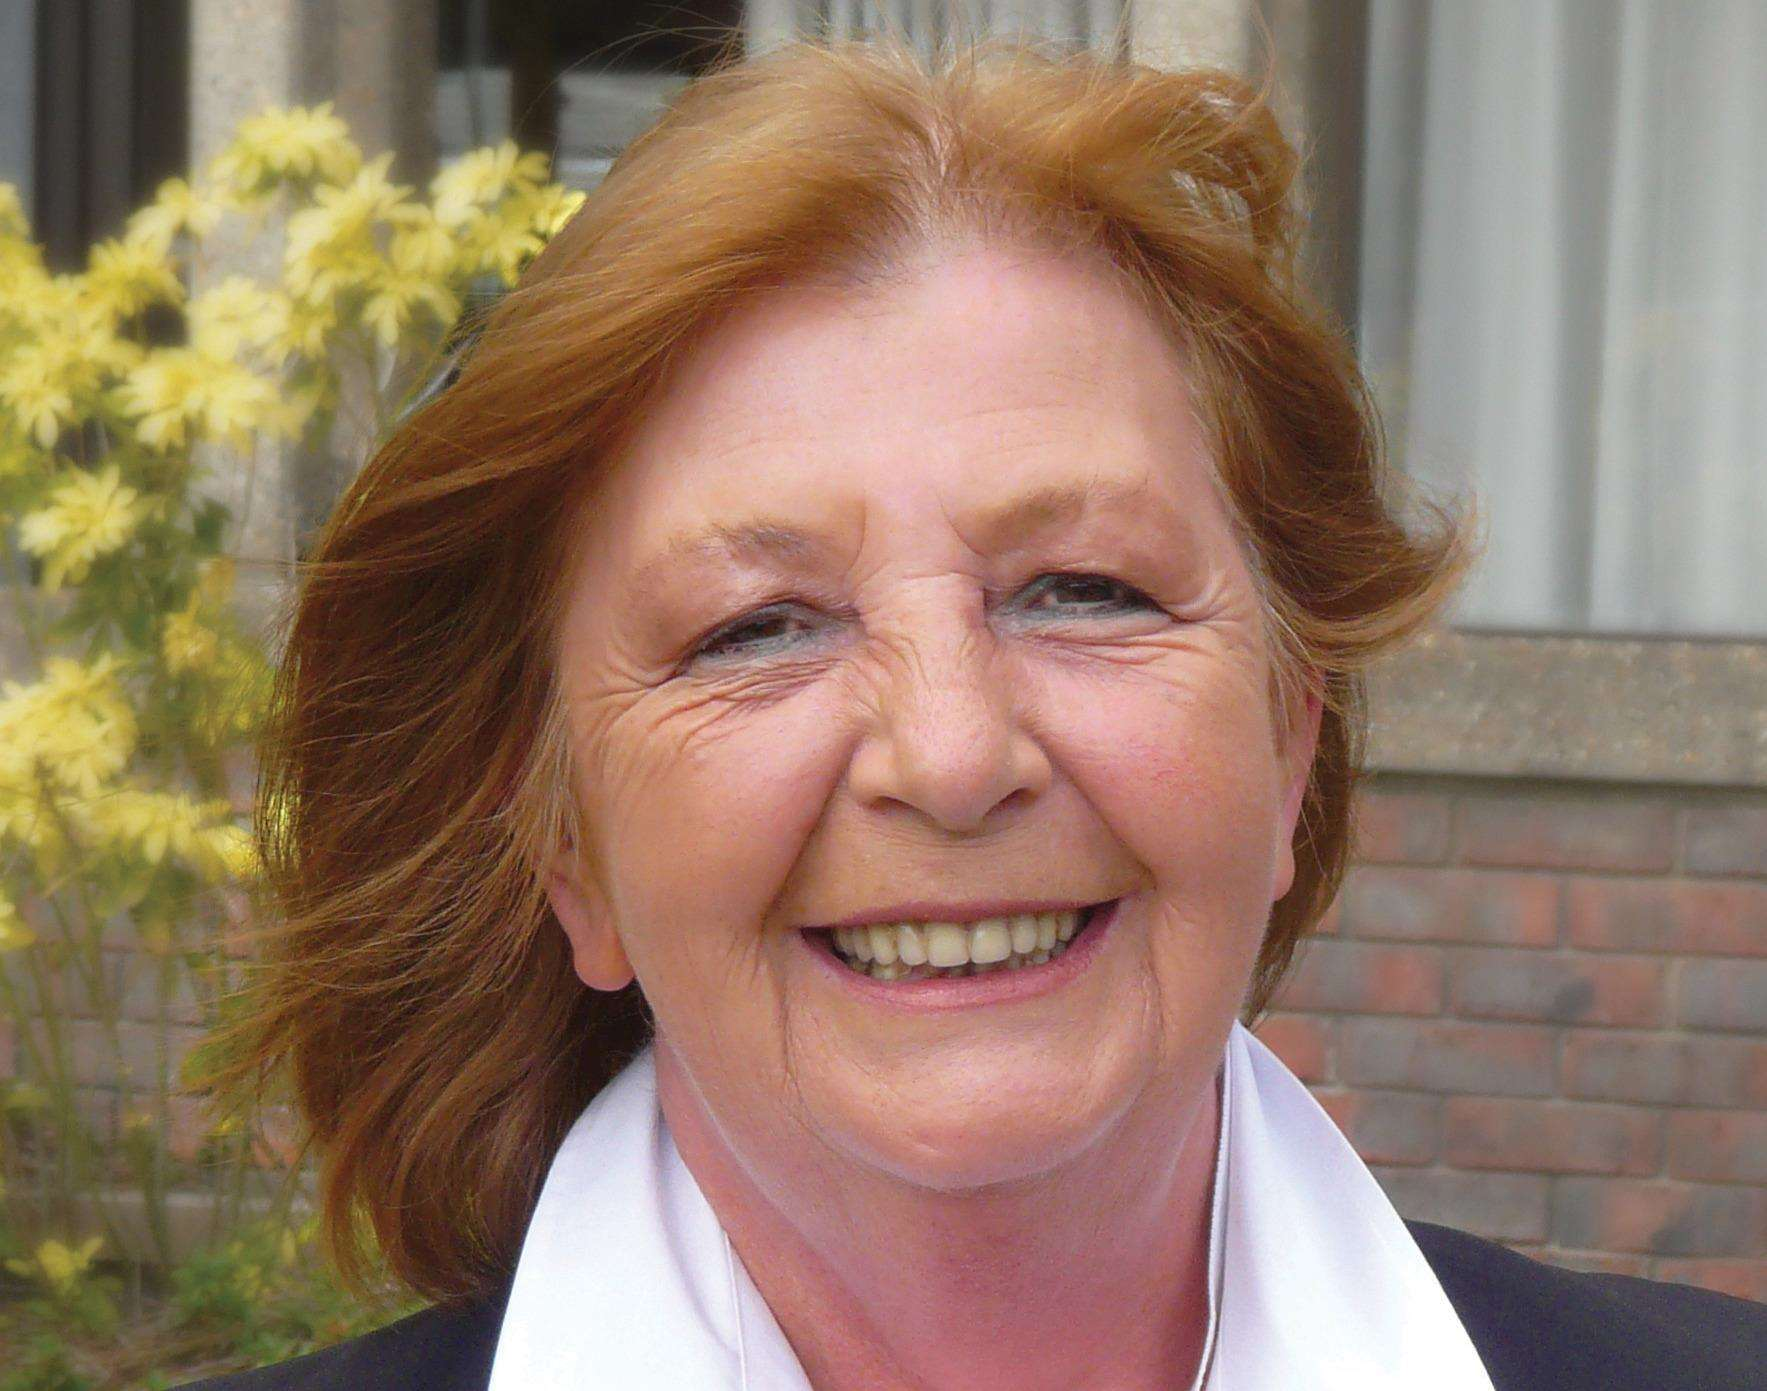 Cllr Jane Chitty